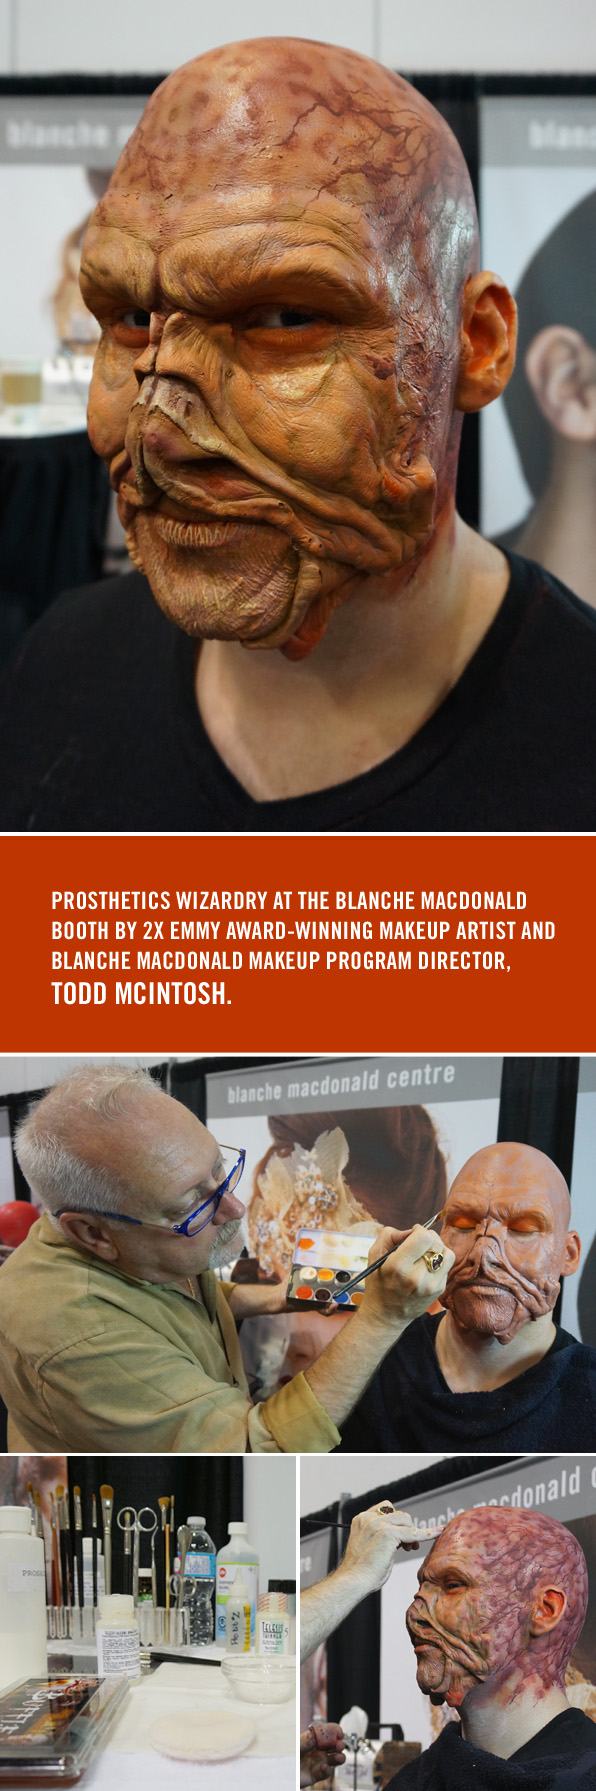 Emmy Award-winning Makeup Artist Todd McIntosh's live demo at the Blanche Macdonald IMATS Vancouver booth!